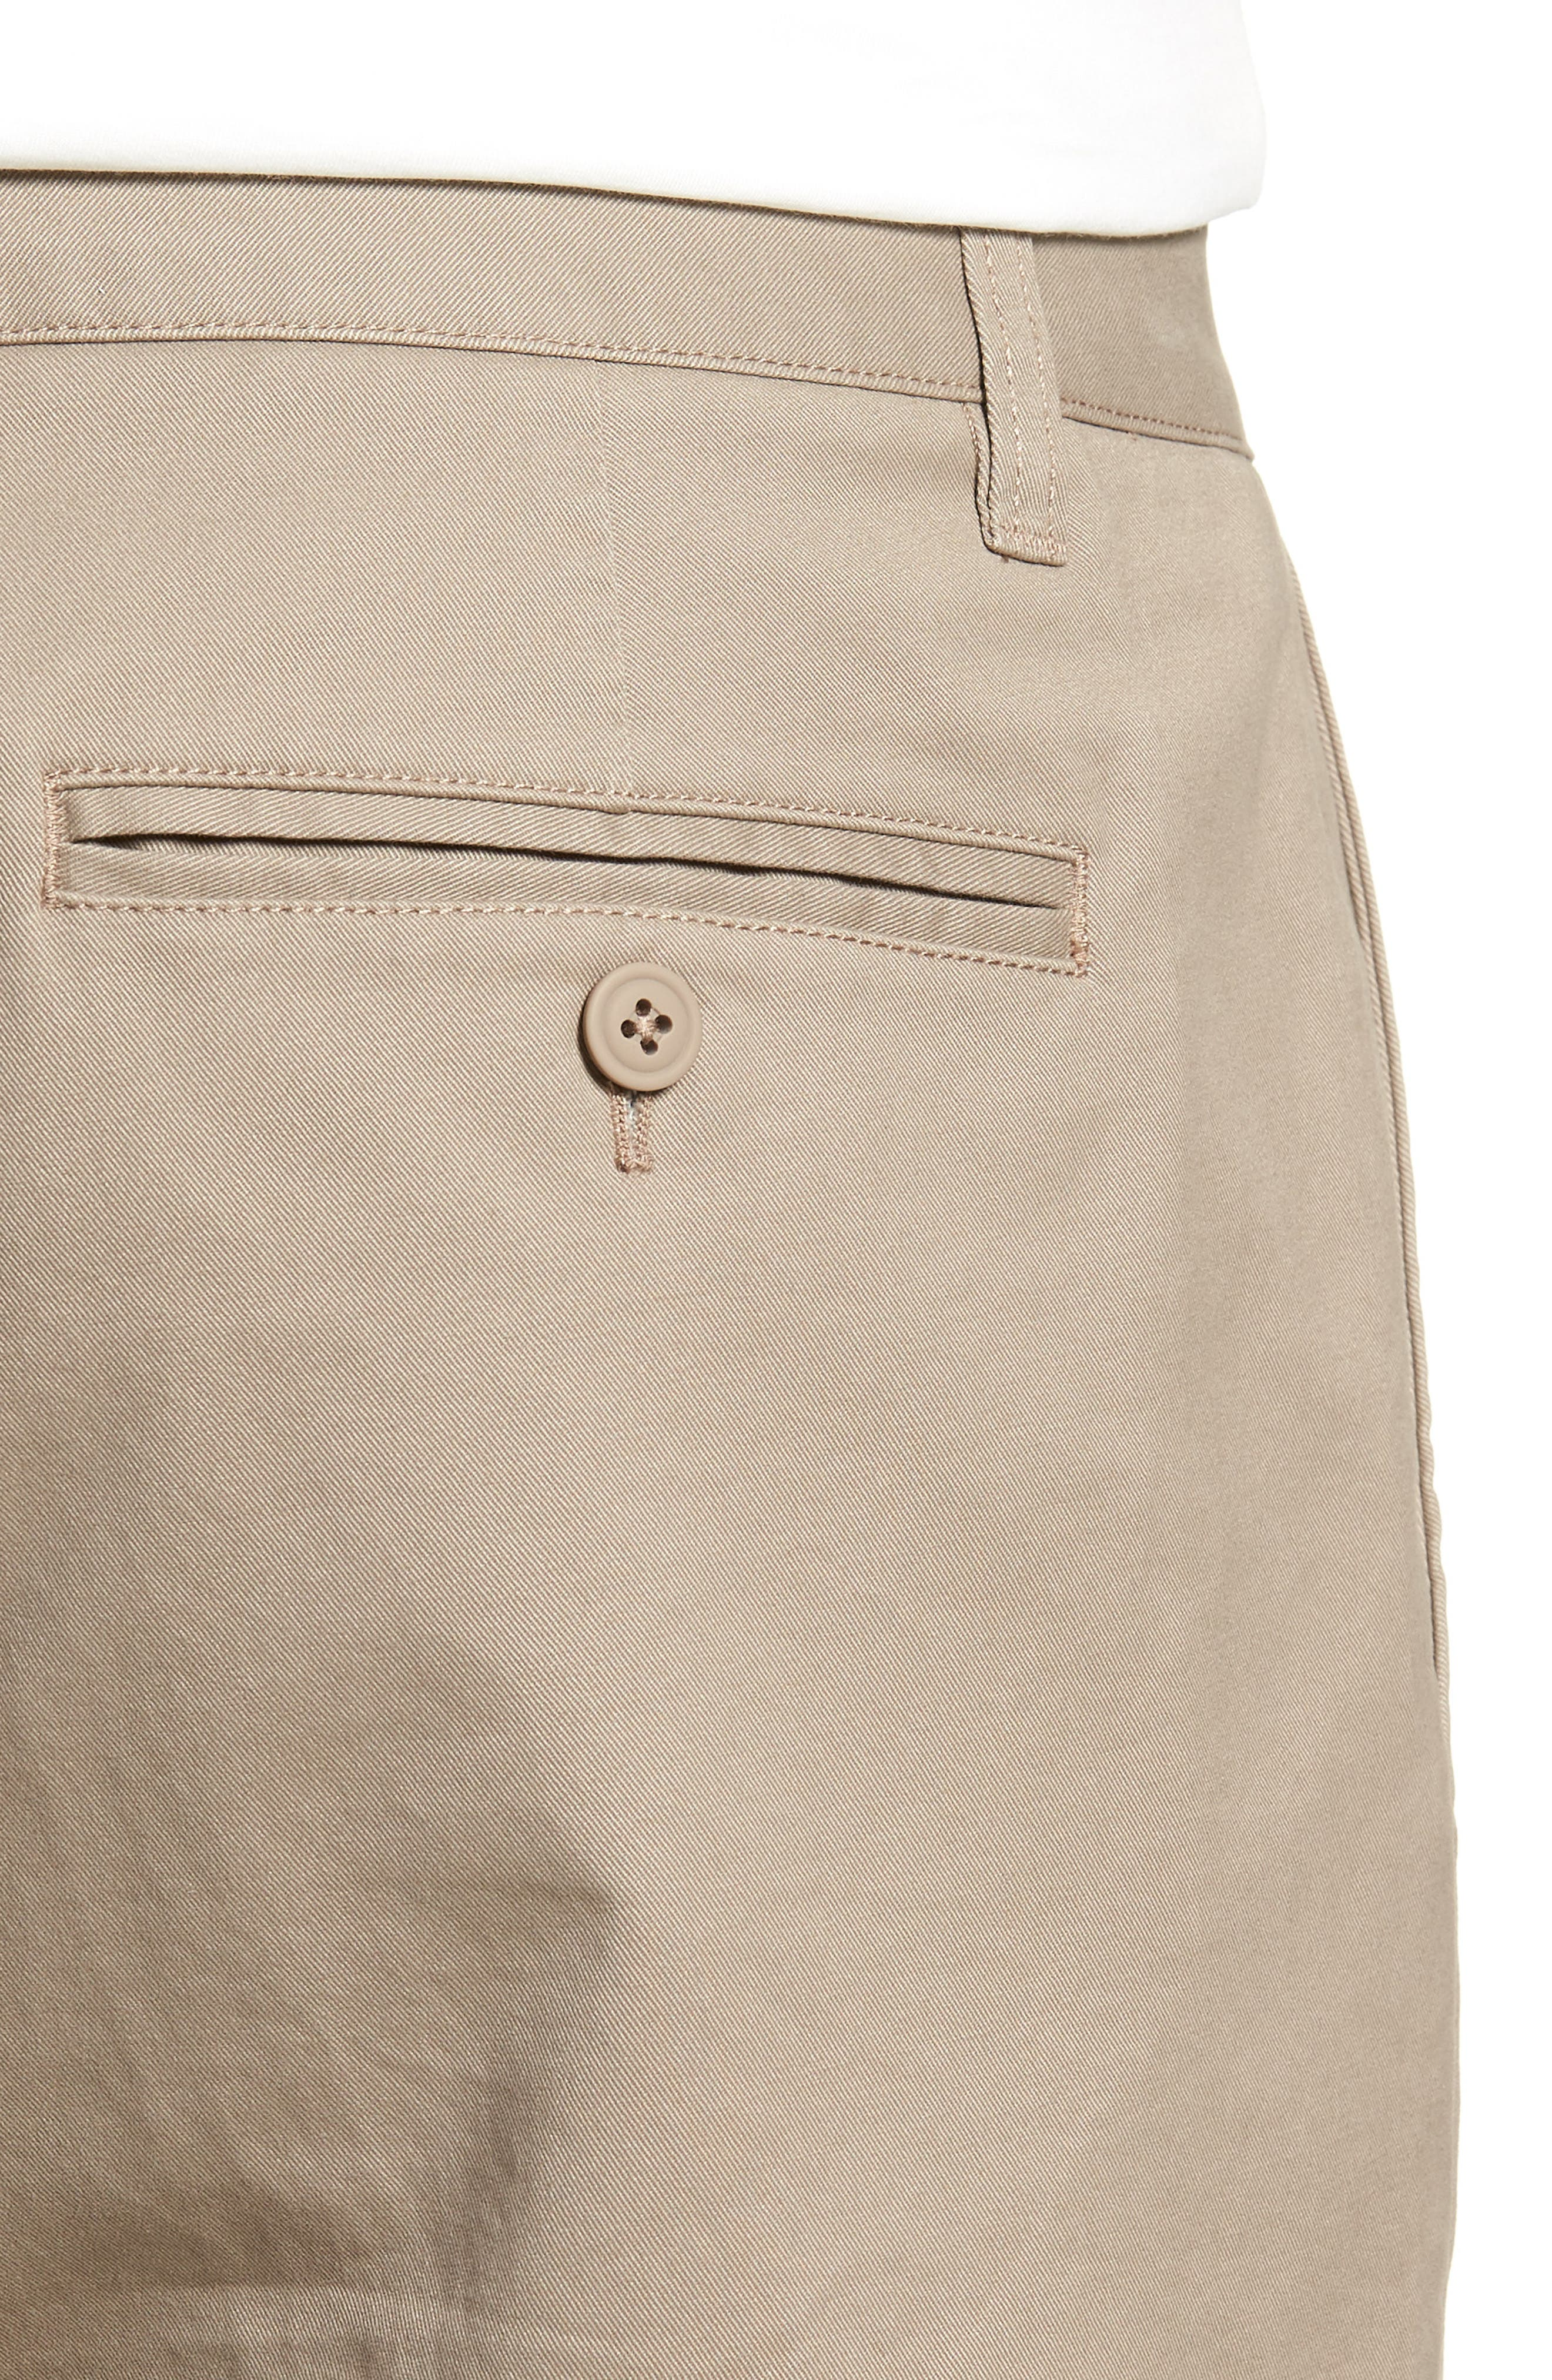 Stretch Chino 7-Inch Shorts,                             Alternate thumbnail 40, color,